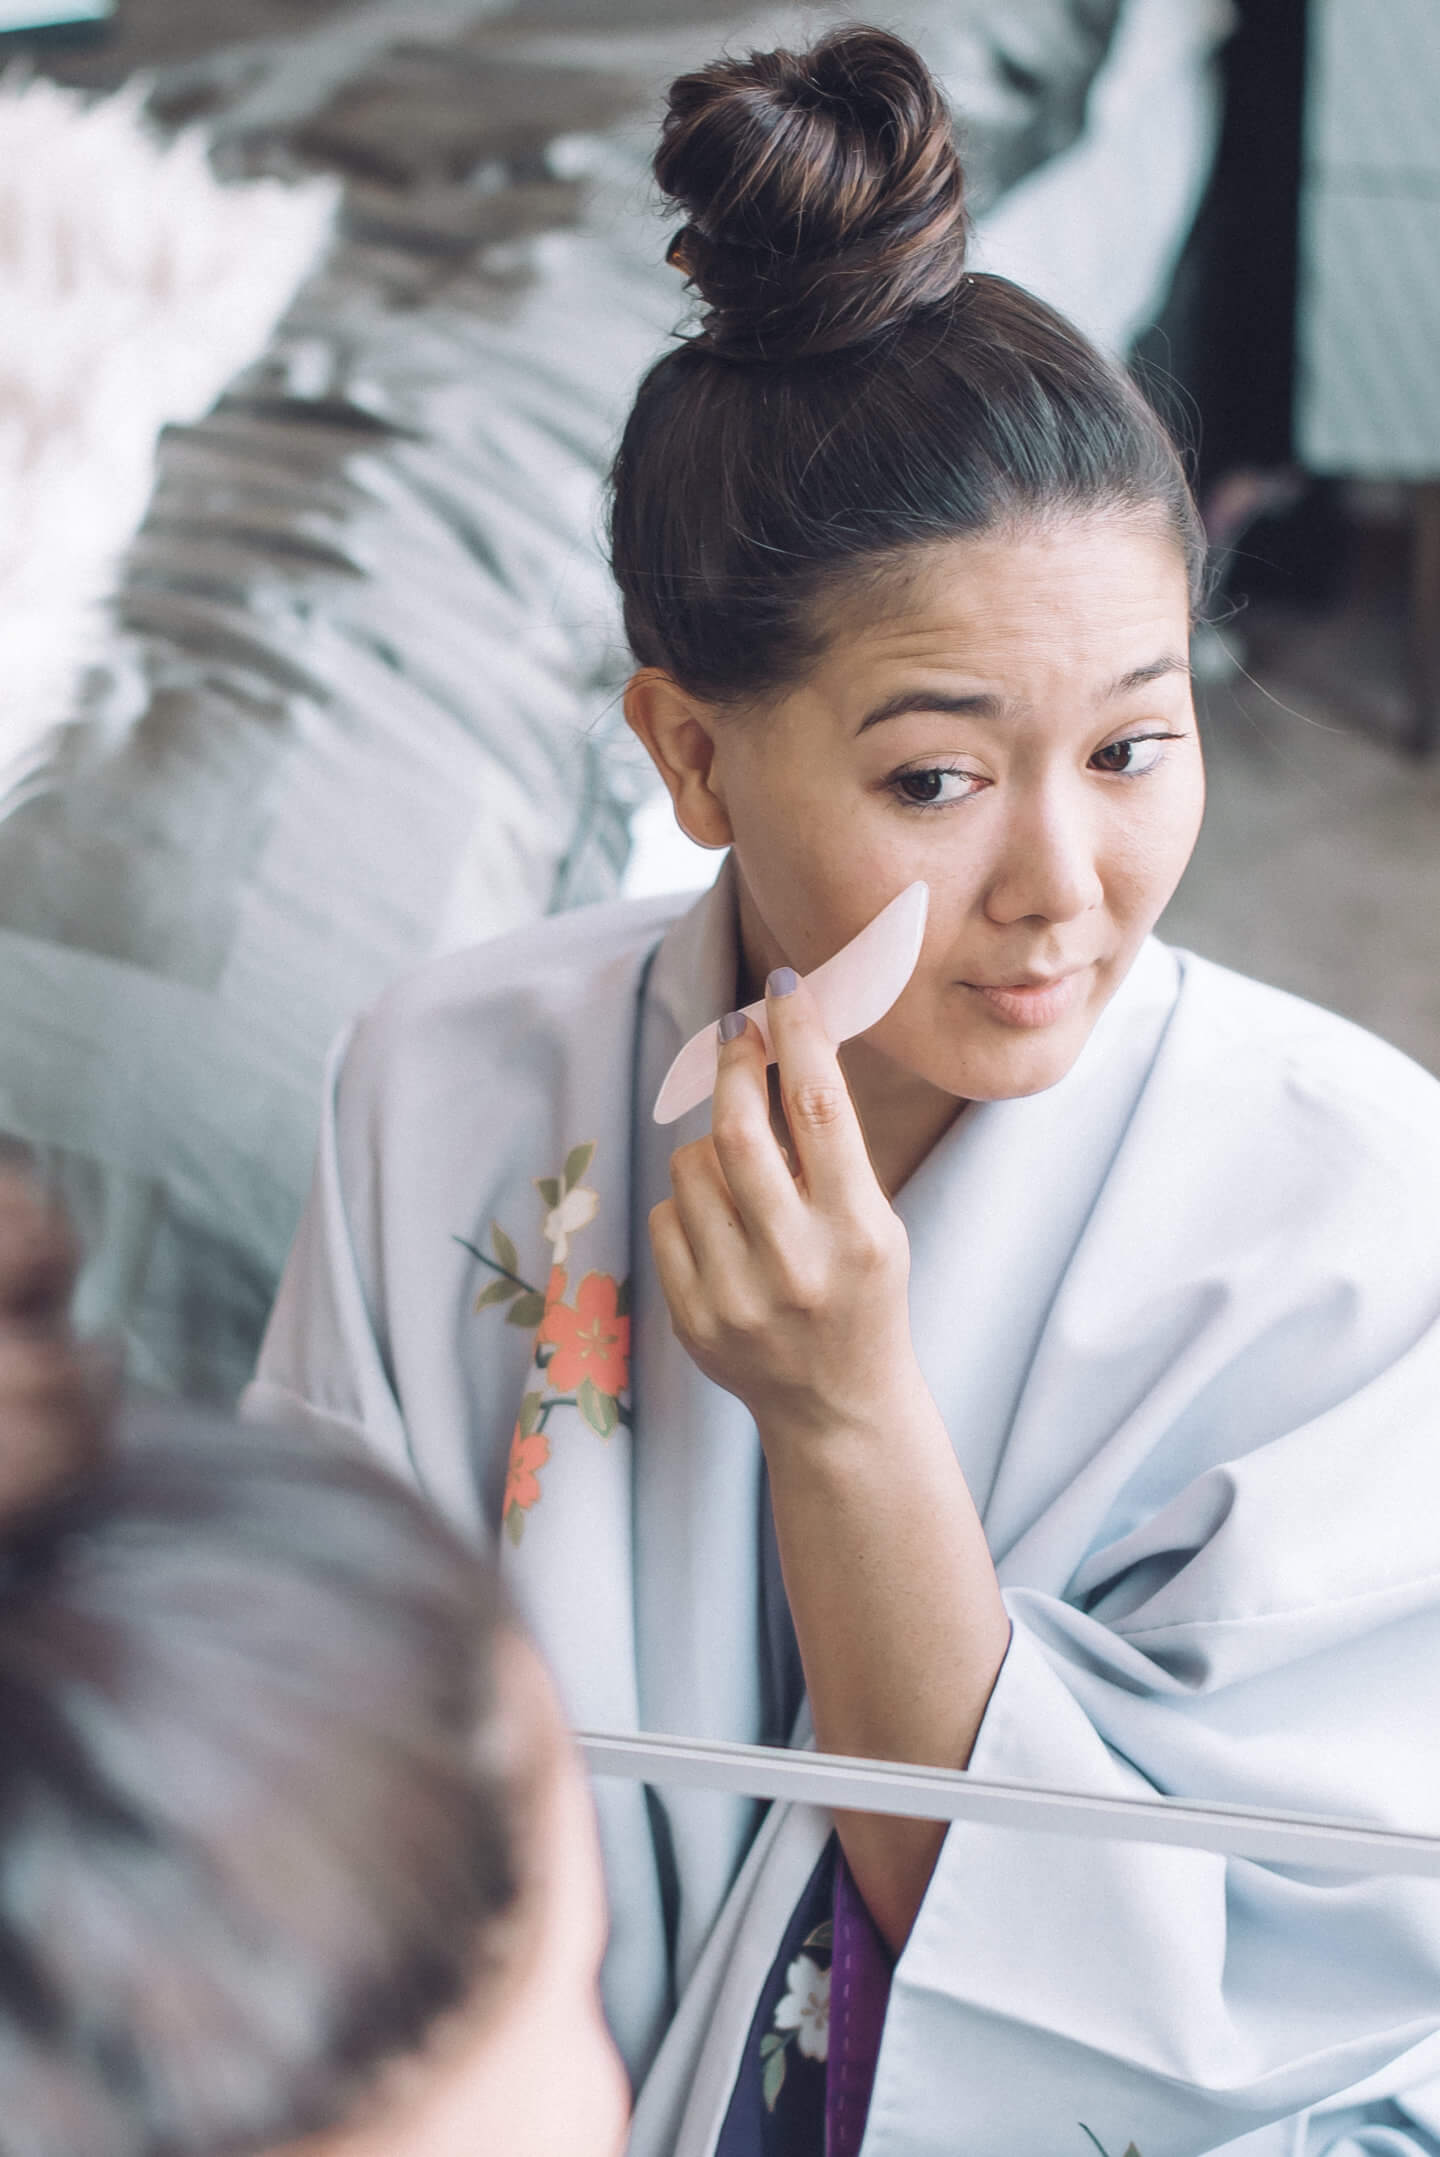 Three self-care skincare routines you haven't tried